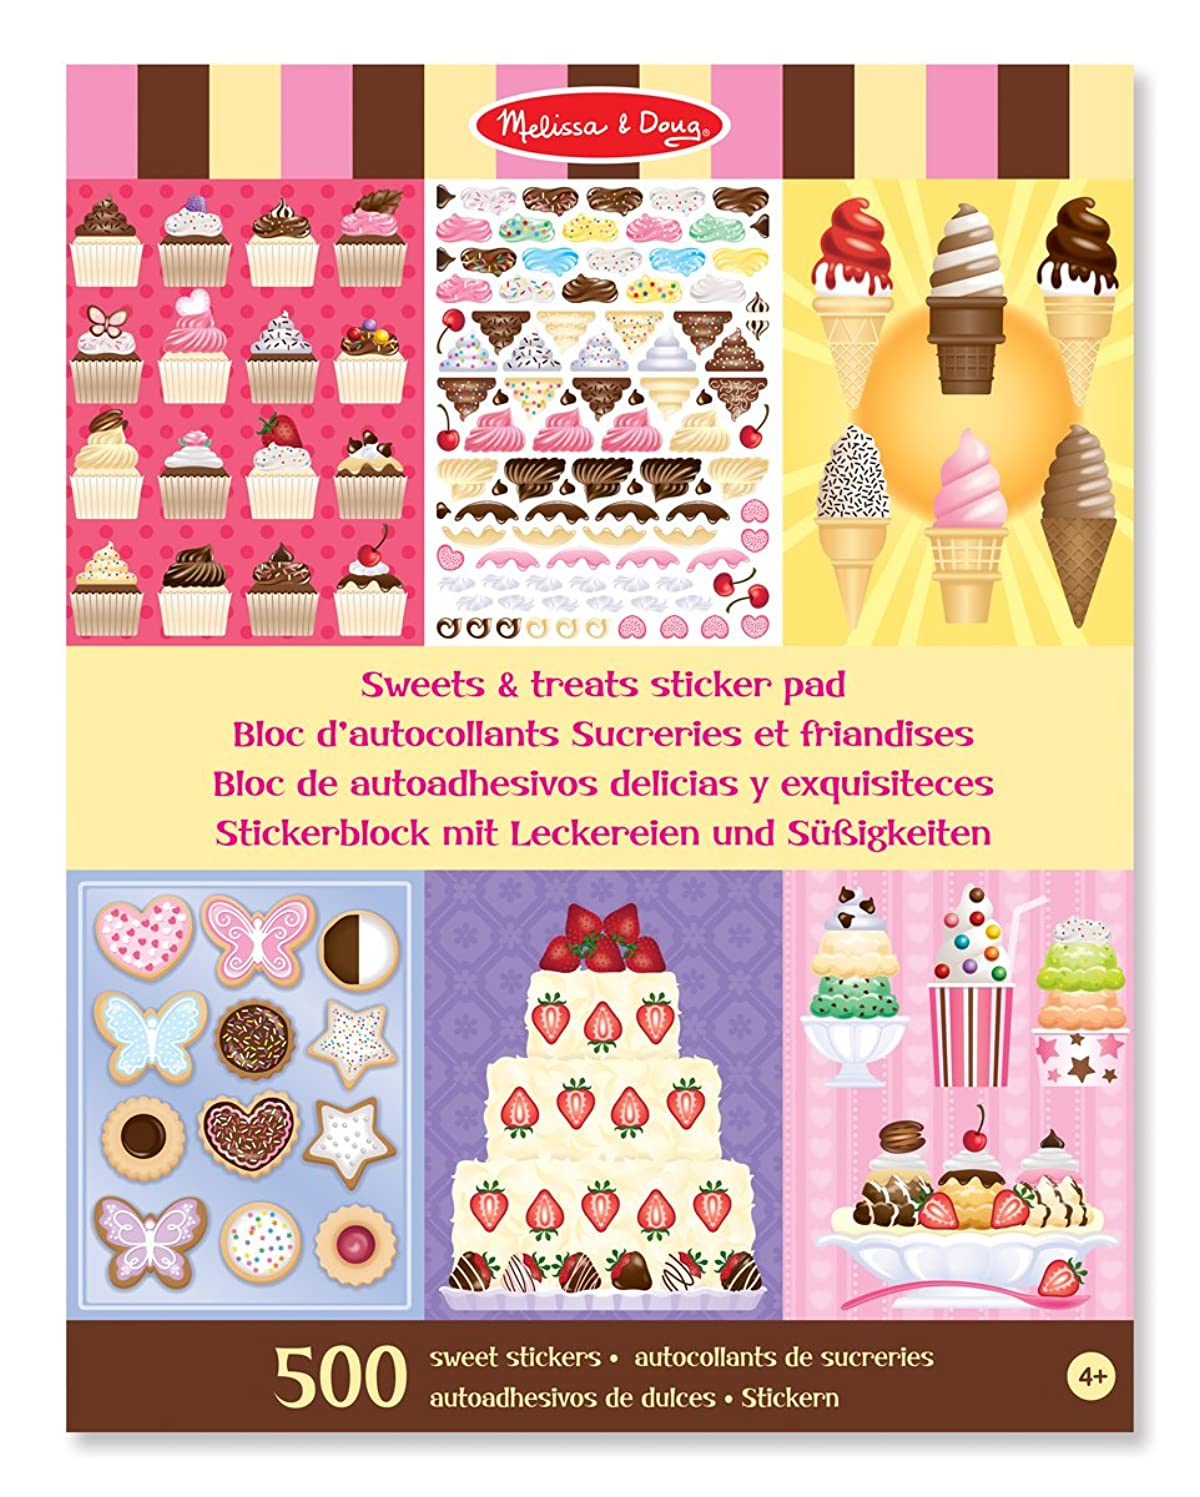 Melissa & Doug Sweets and Treats Sticker Pad - 500 Stickers, 16 Backgrounds umvi5187956